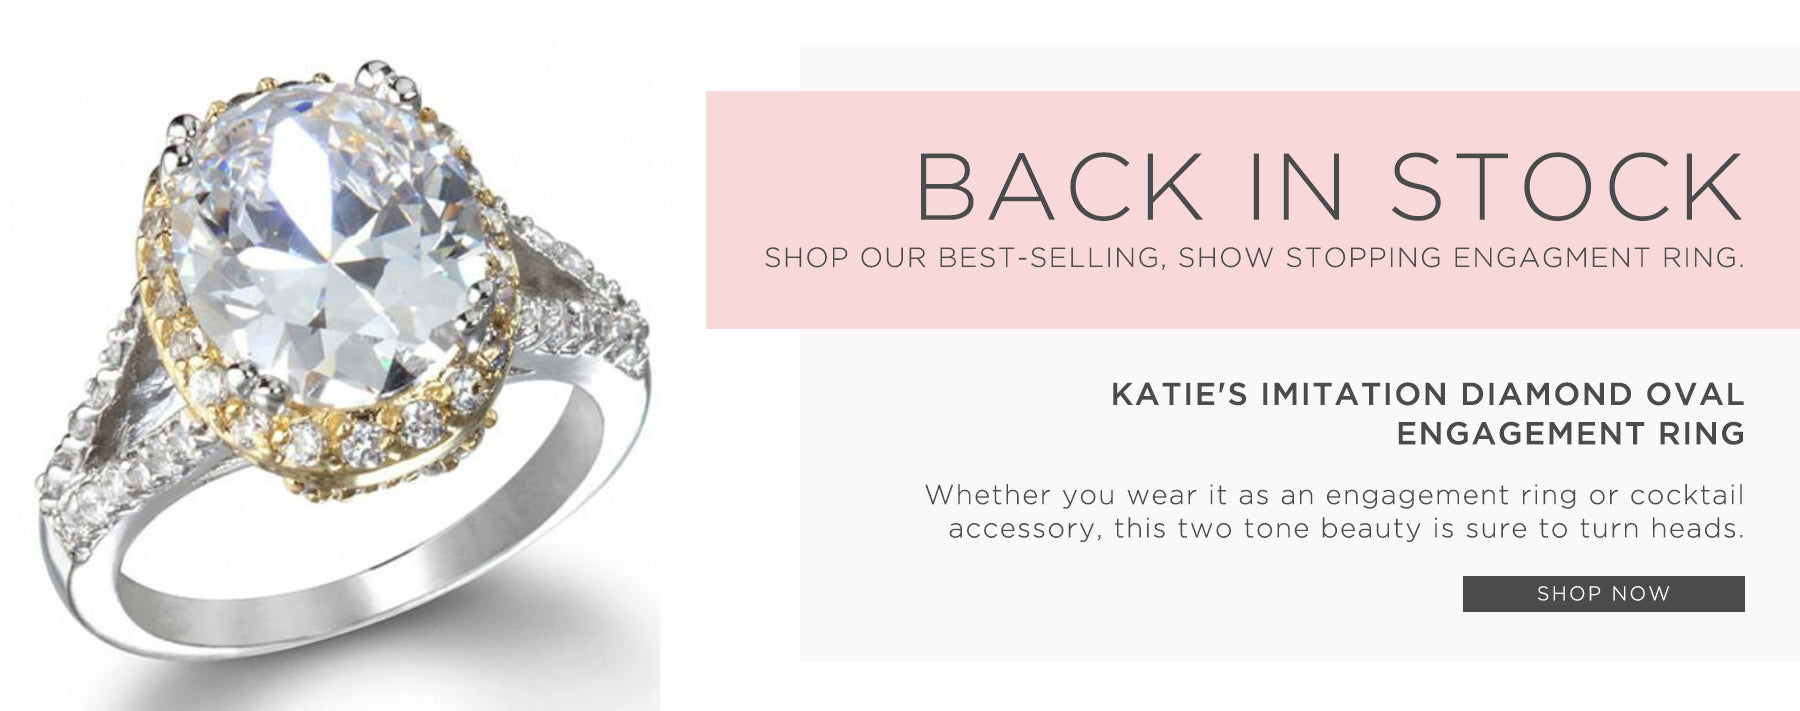 Back in stock. Shop our best-selling, show stopping engagement ring. Katie's imitation Diamond Oval Engagement Ring. Whether you wear to as an engagement ring or cocktail accessory, this two tone beauty is sure to turn heads. Shop now.